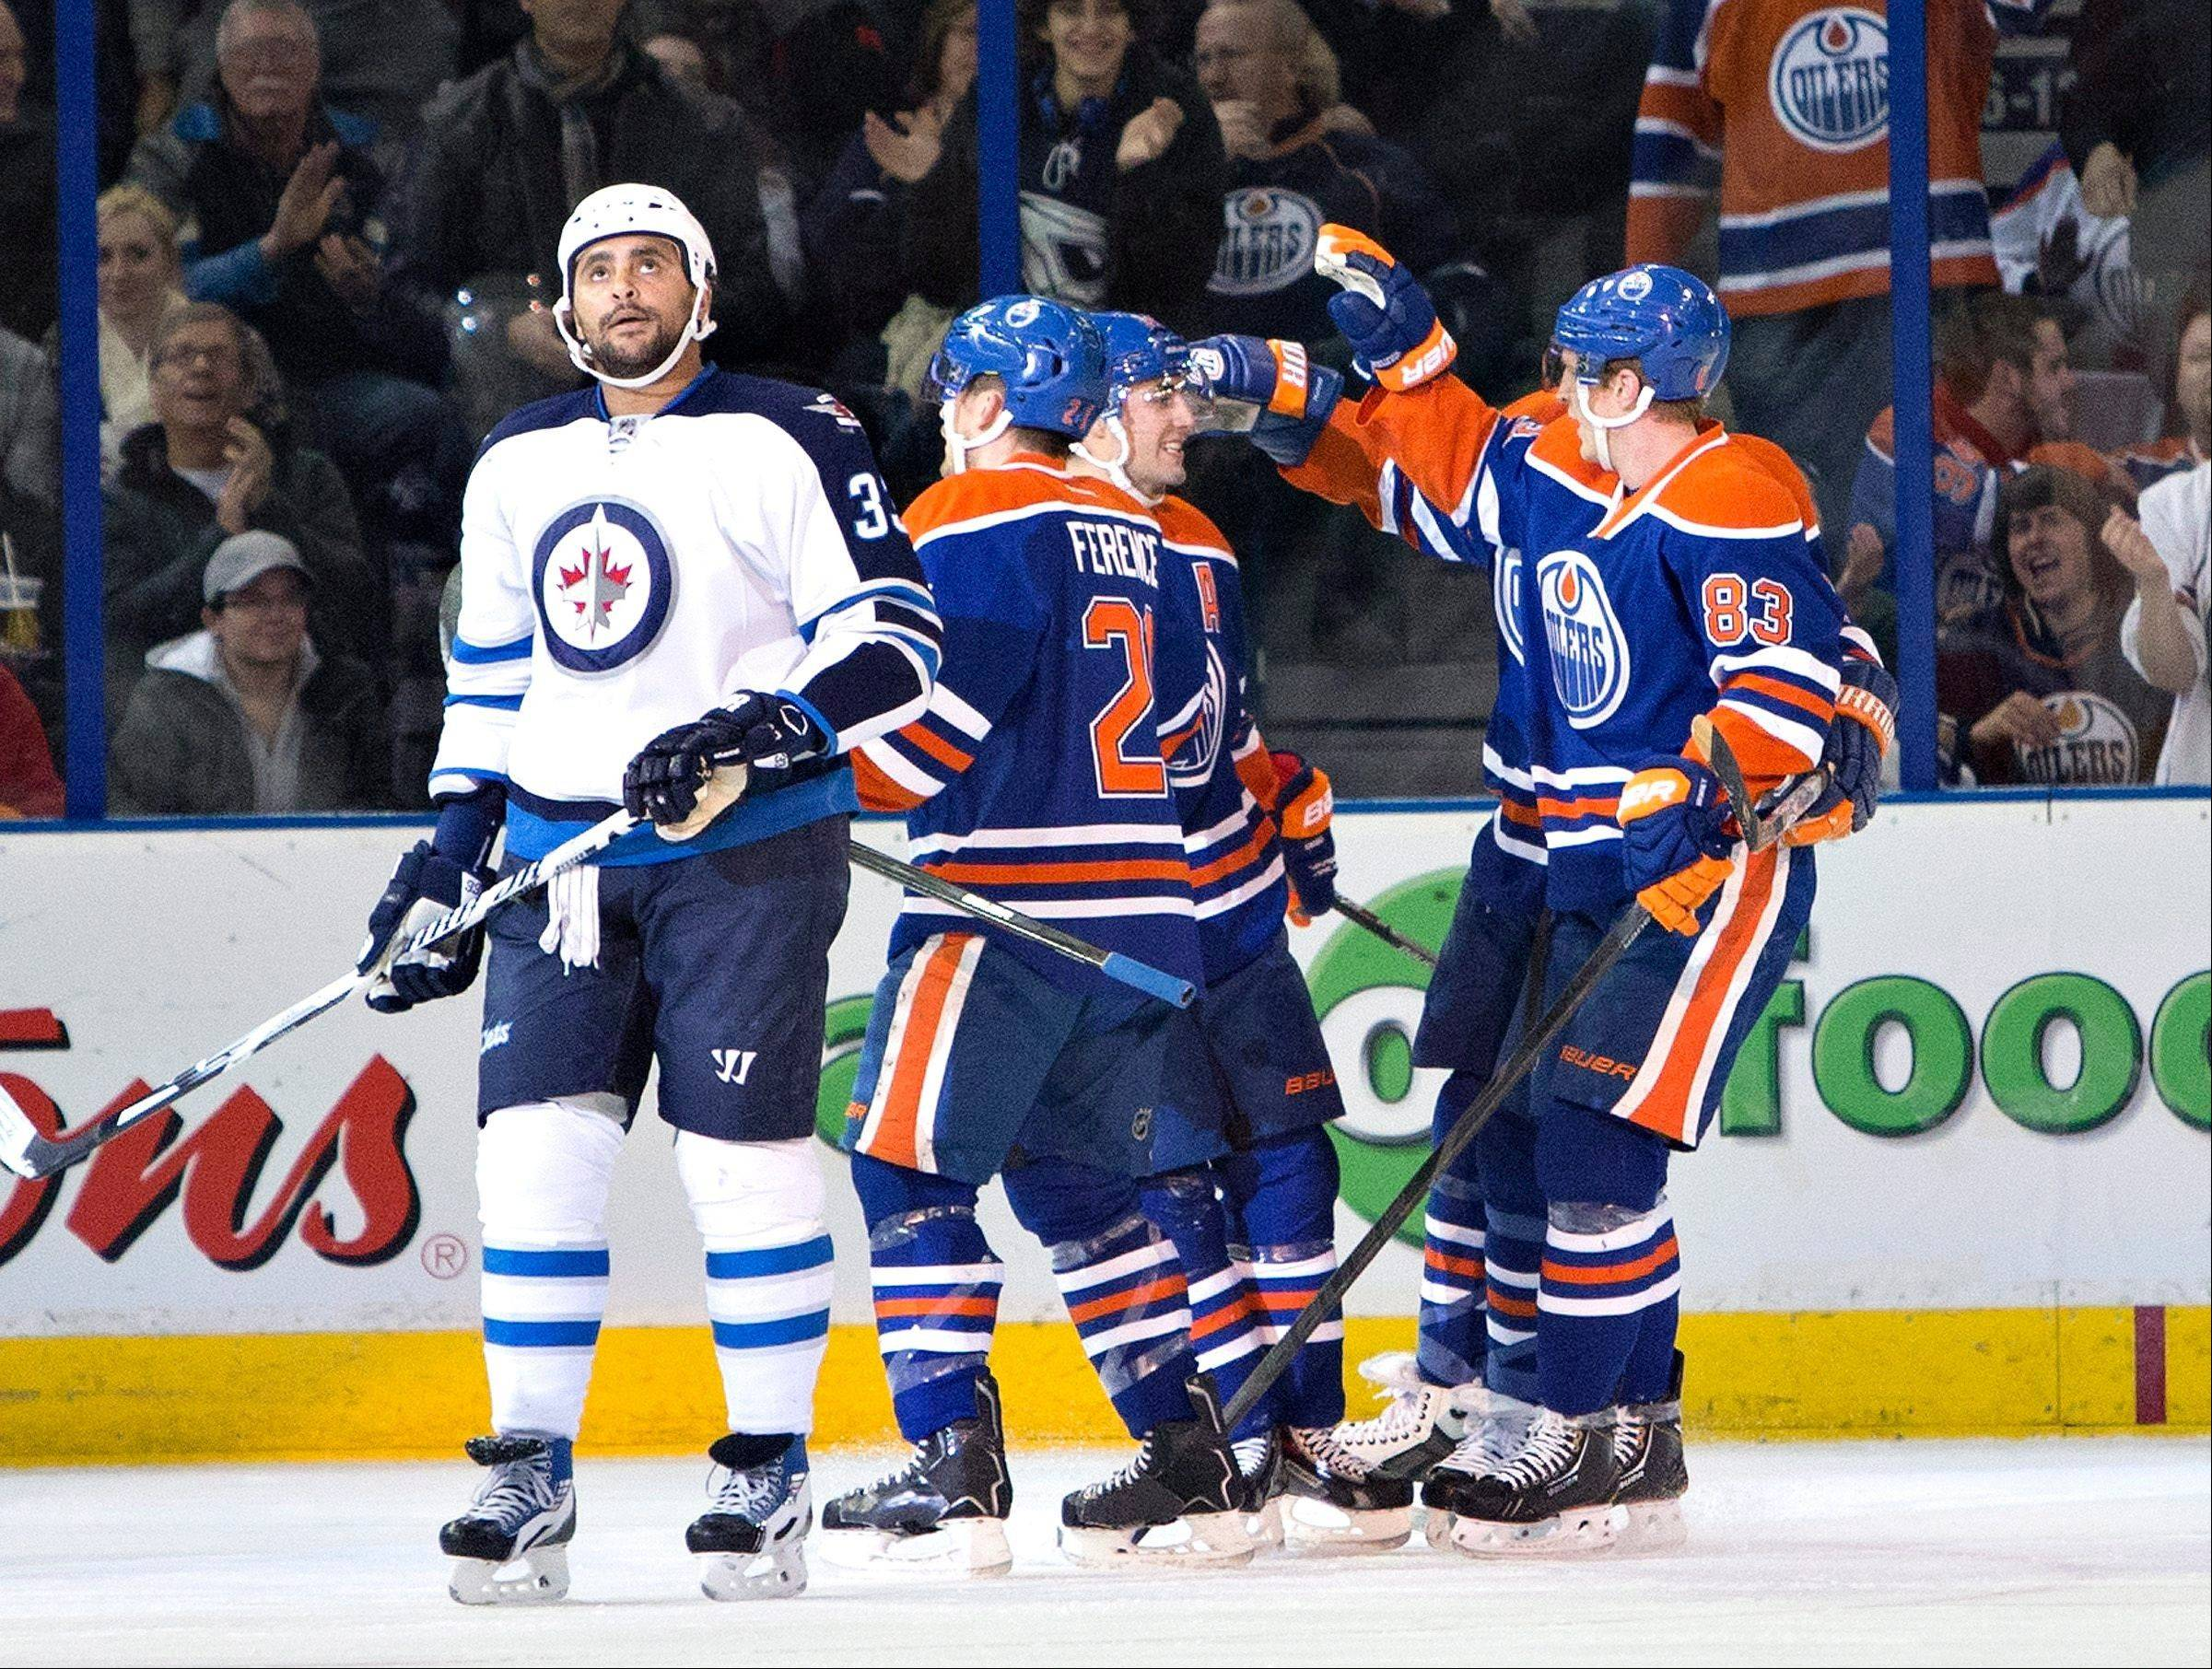 Winnipeg's Dustin Byfuglien skates away as Edmonton's Andrew Ference (21), Jordan Eberle (14) and Ales Hemsky (83) celebrate a goal during the first period of Monday's game in Edmonton, Alberta.